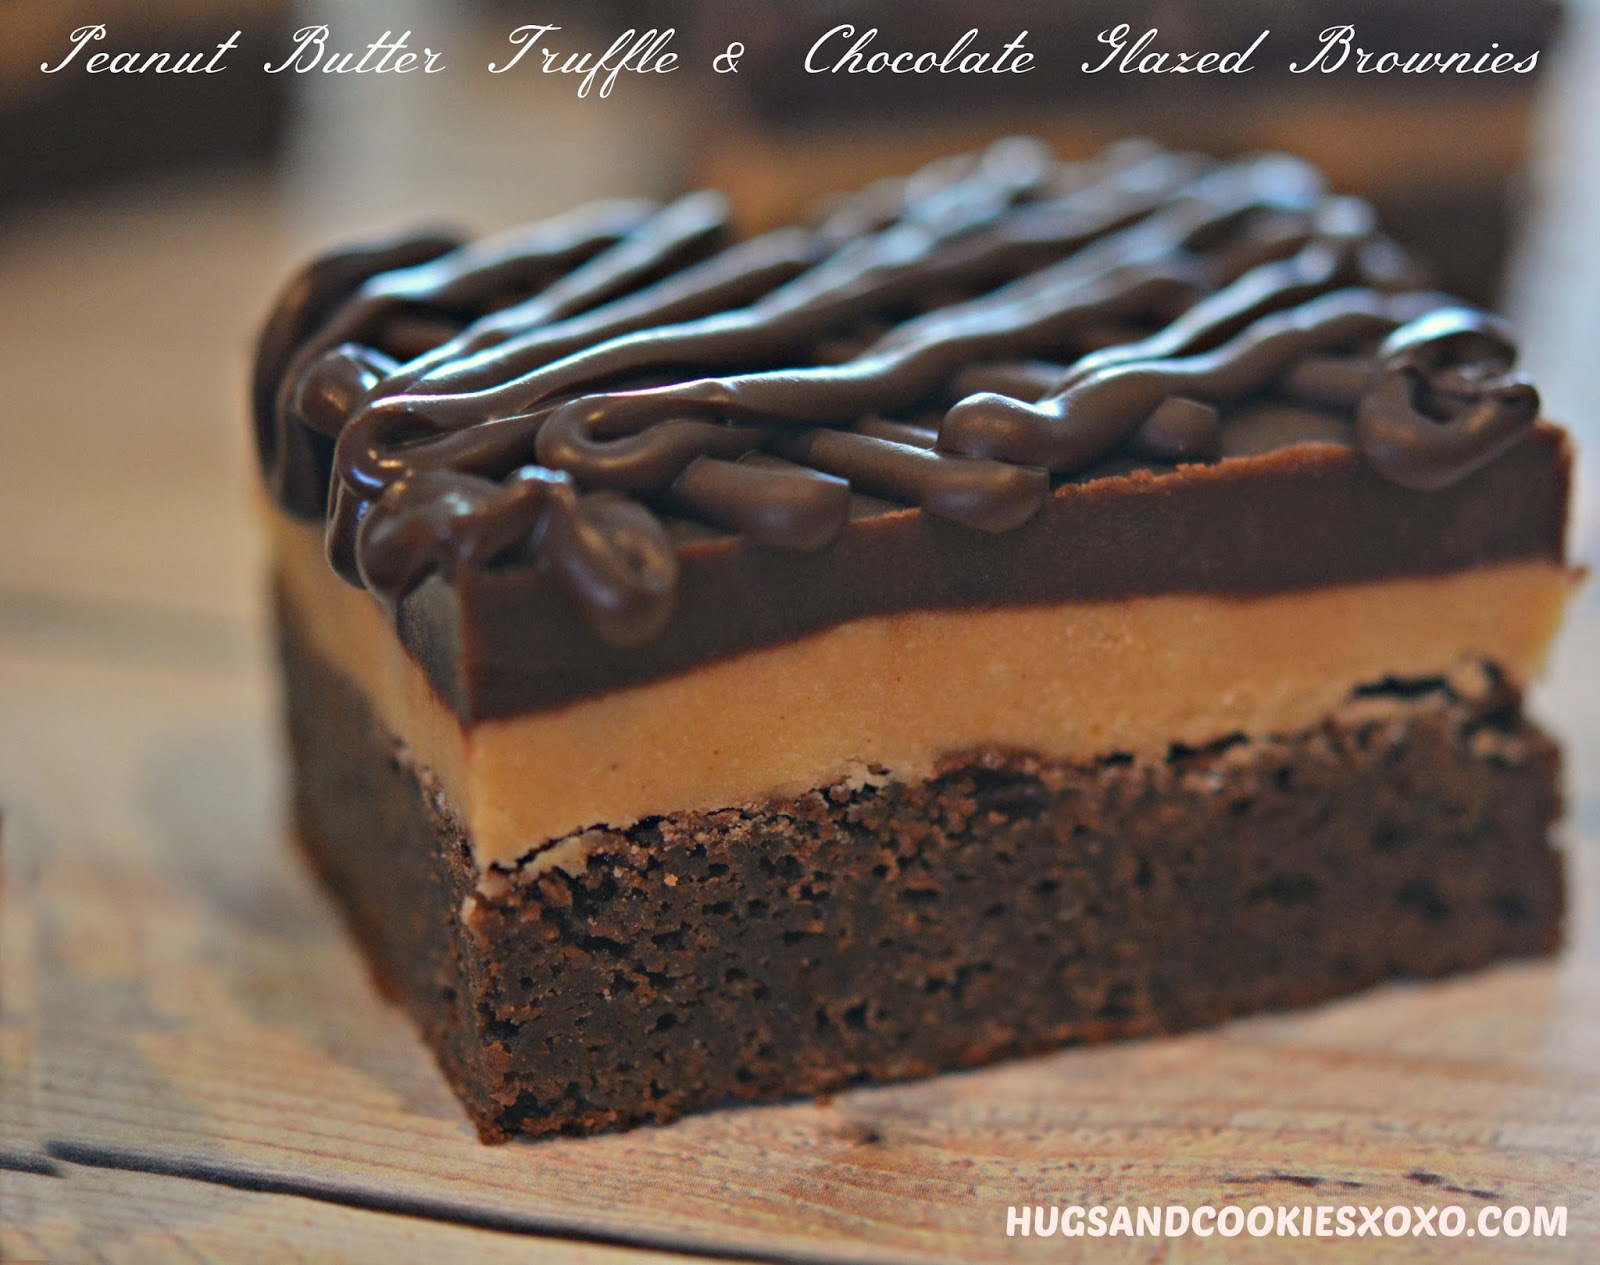 PEANUT BUTTER TRUFFLE & CHOCOLATE GLAZED BROWNIES